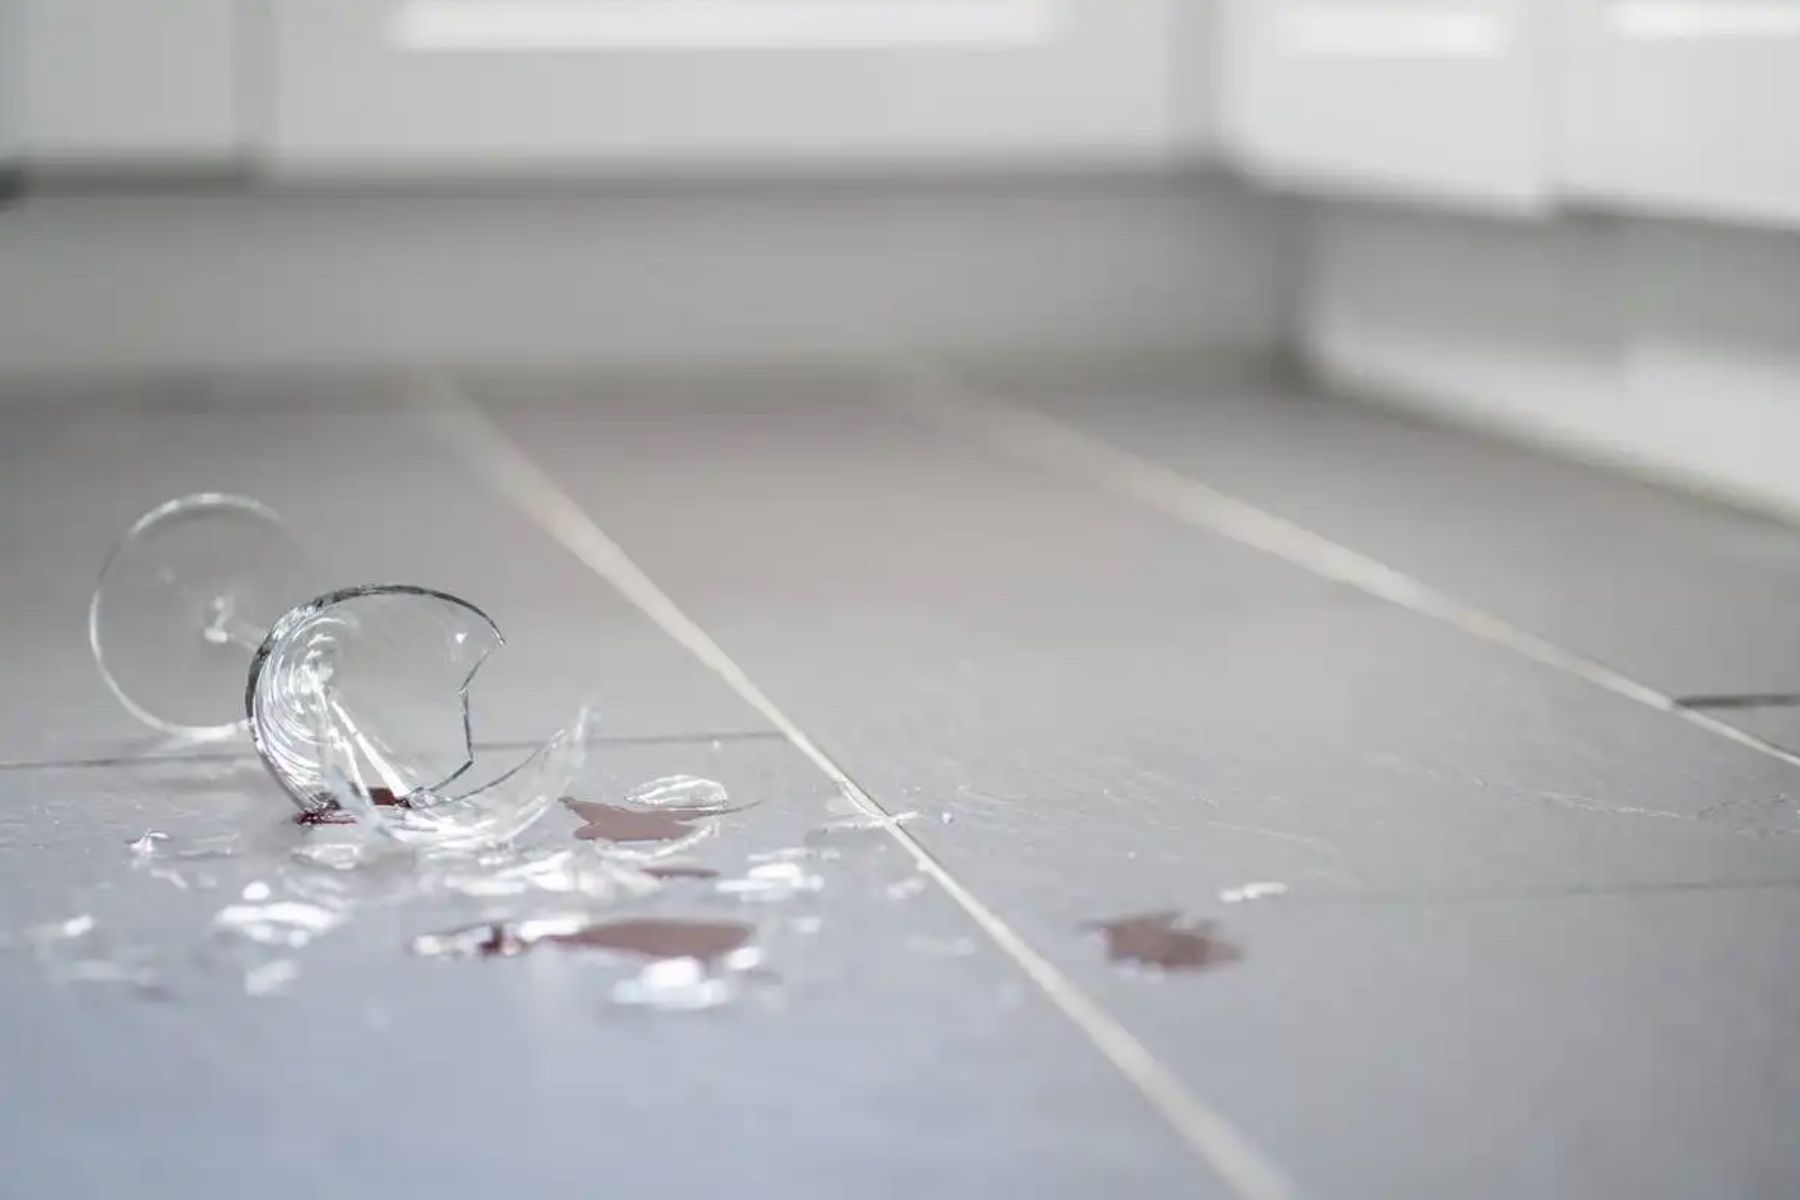 Smashed wine glass on the floor